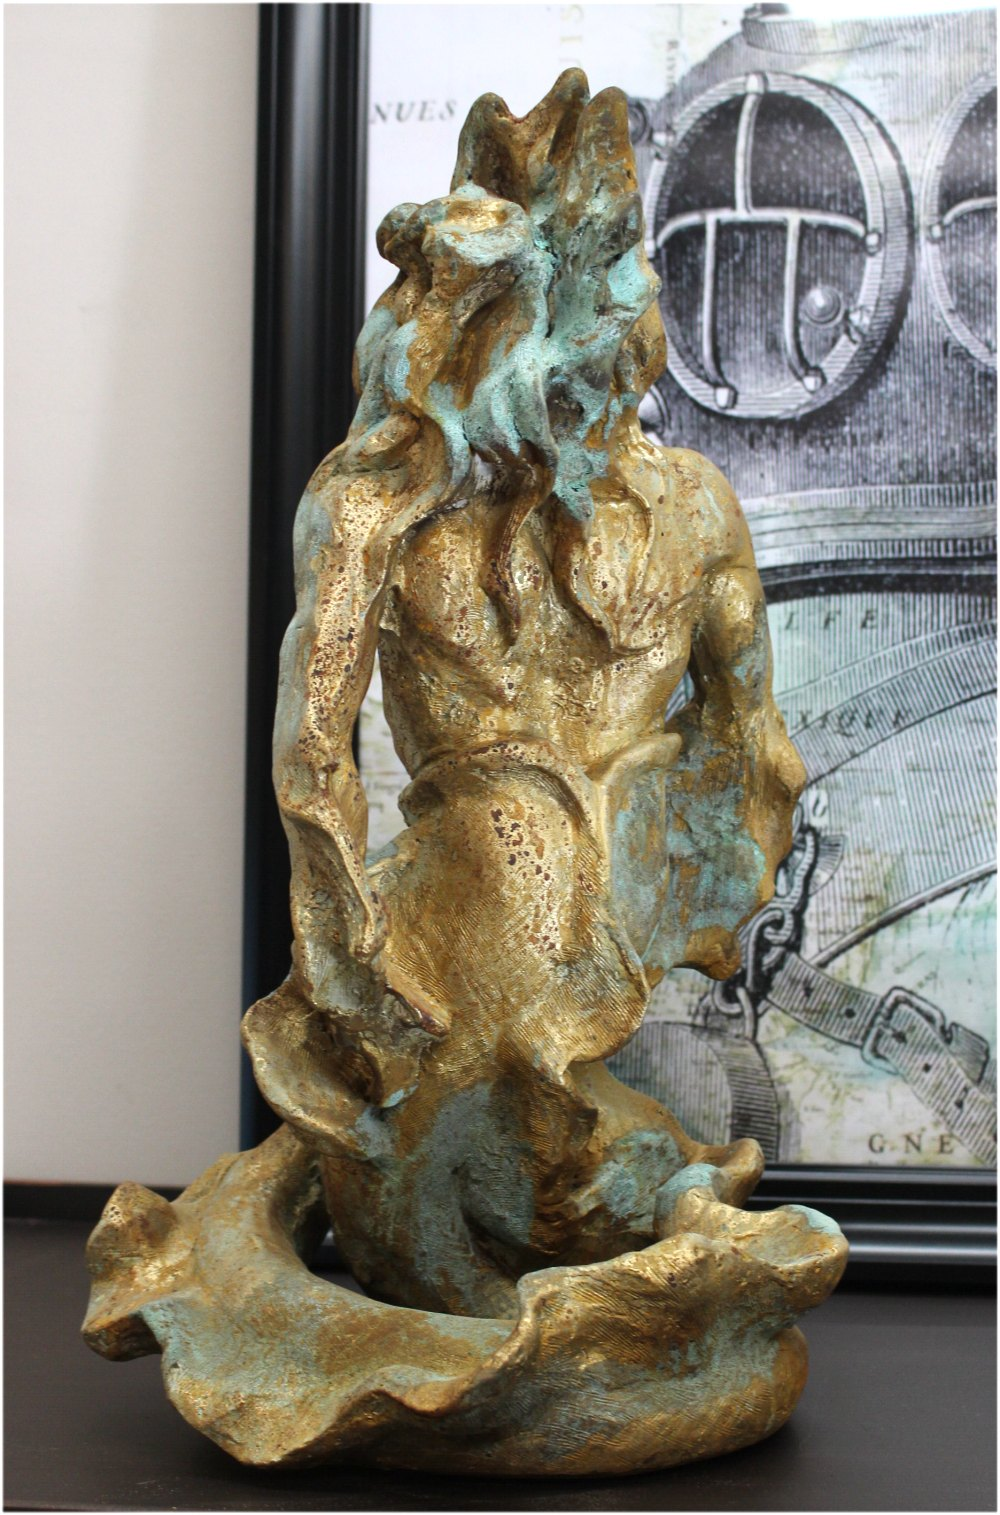 Poseidon Gold Leaf & Tiffany Green Merman Sculpture with Beard, Waves & Flowing Hair